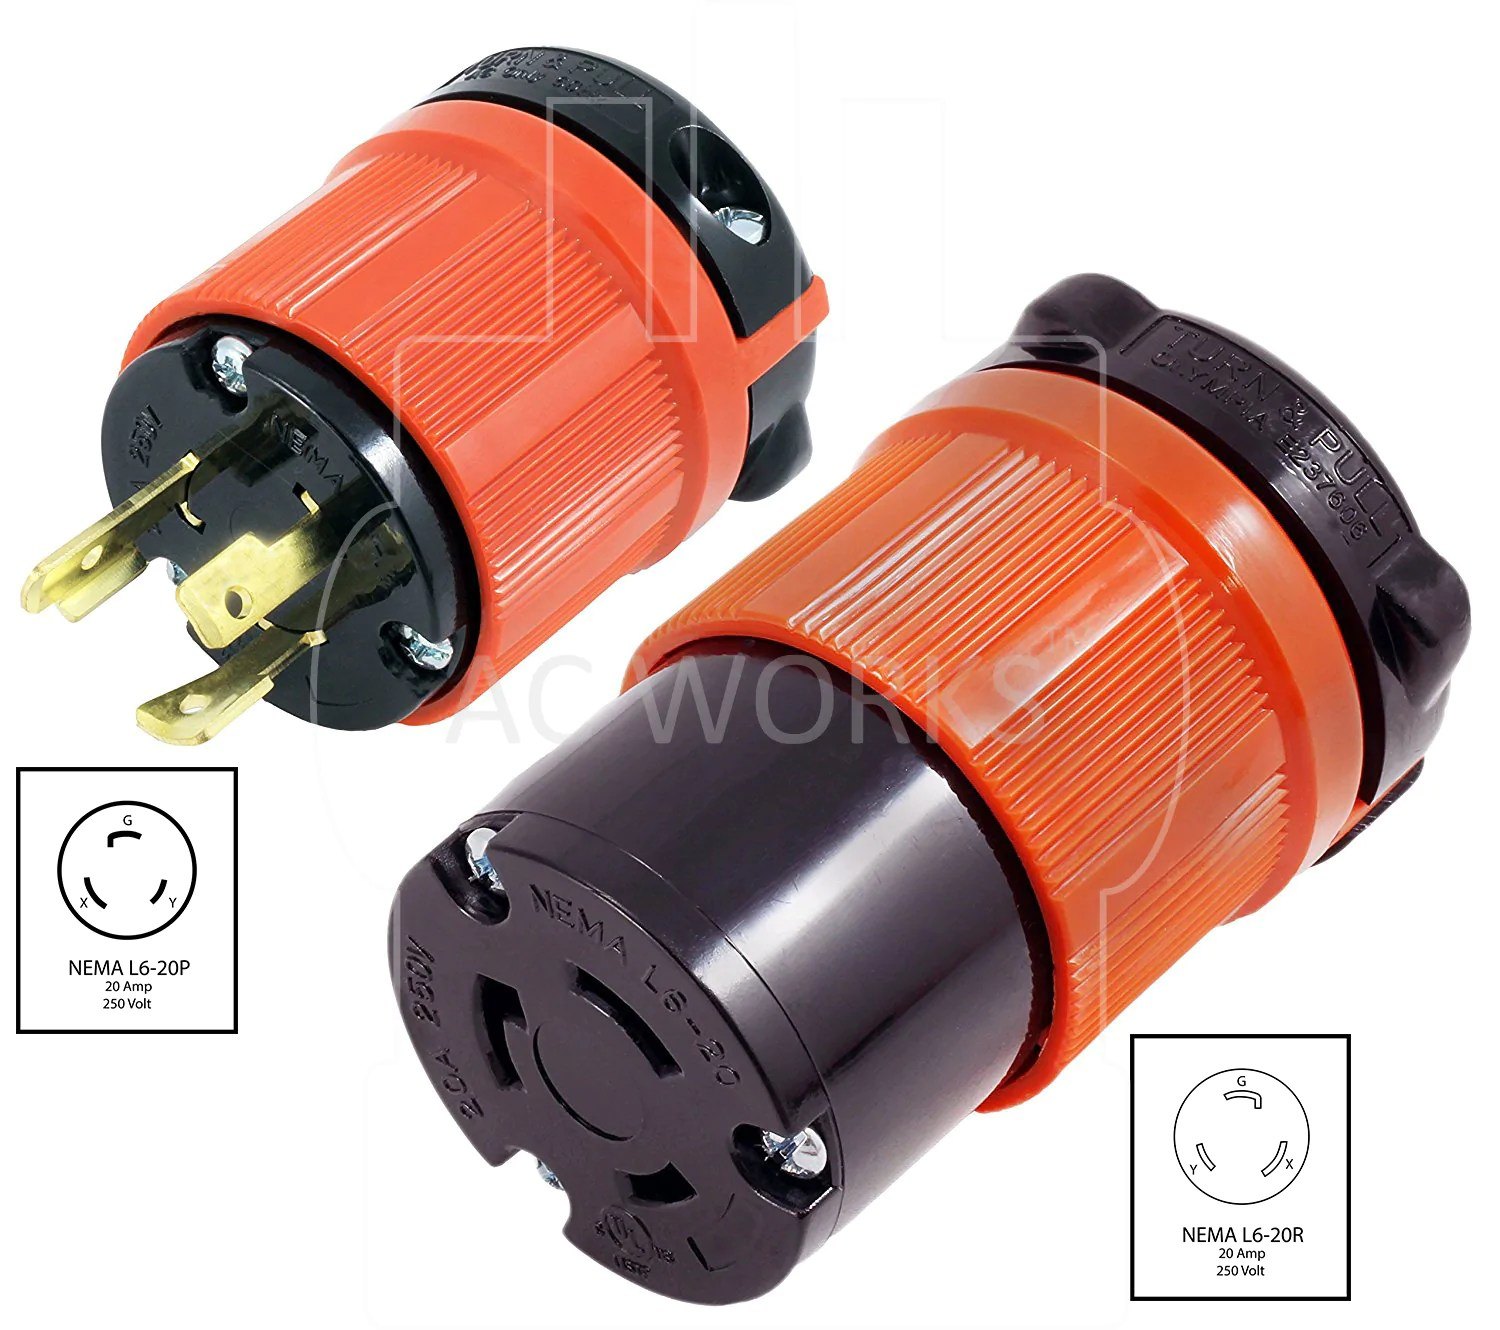 medium resolution of  ac works ac connectors nema l6 20p l620p l620 3